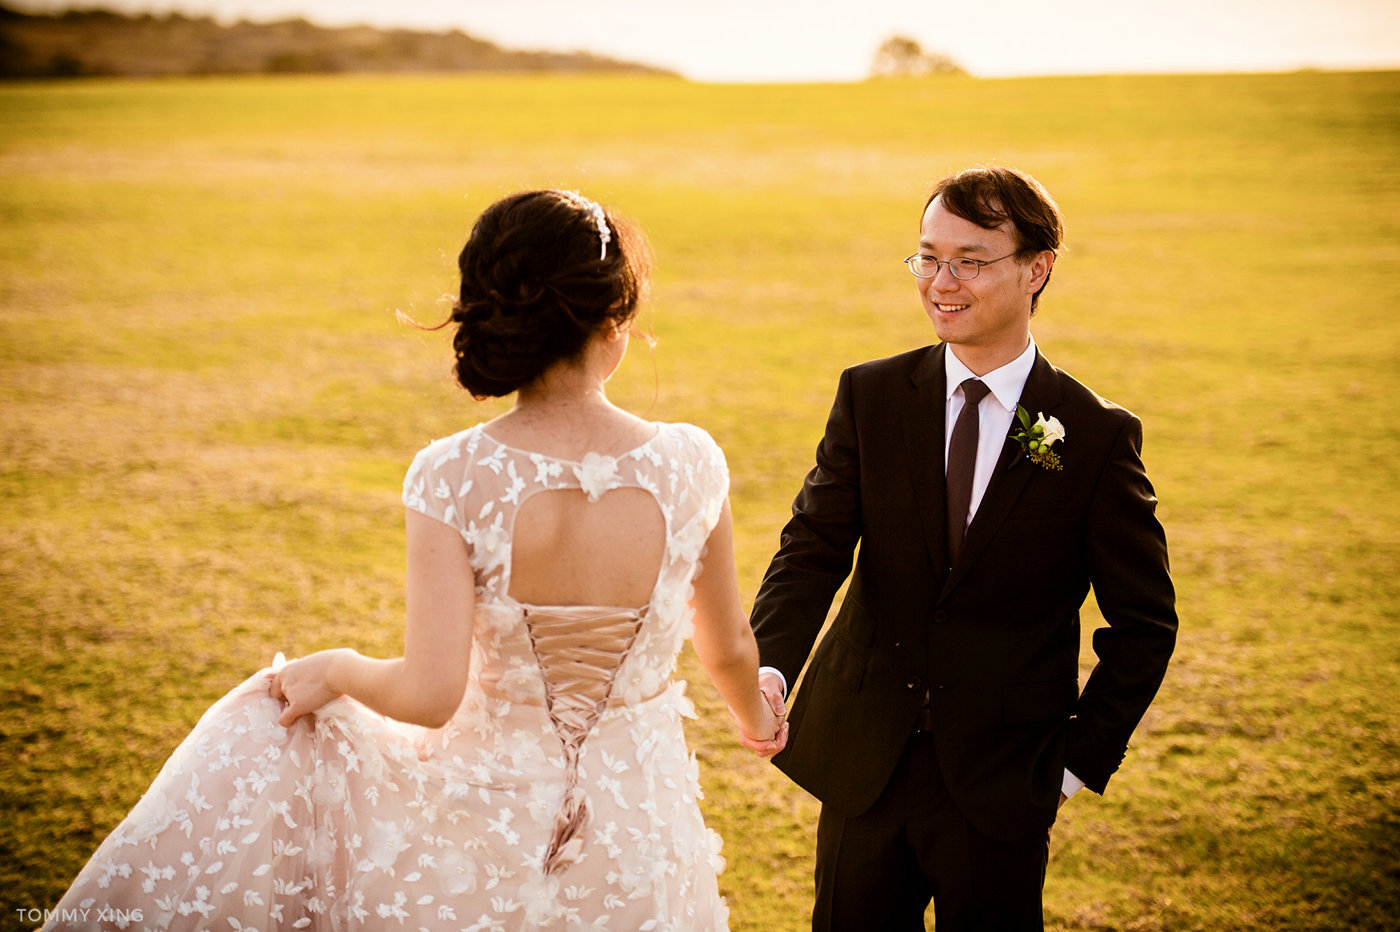 Qinglu Meng & Daozheng Chen Wedding Slideshow-189-E.JPG